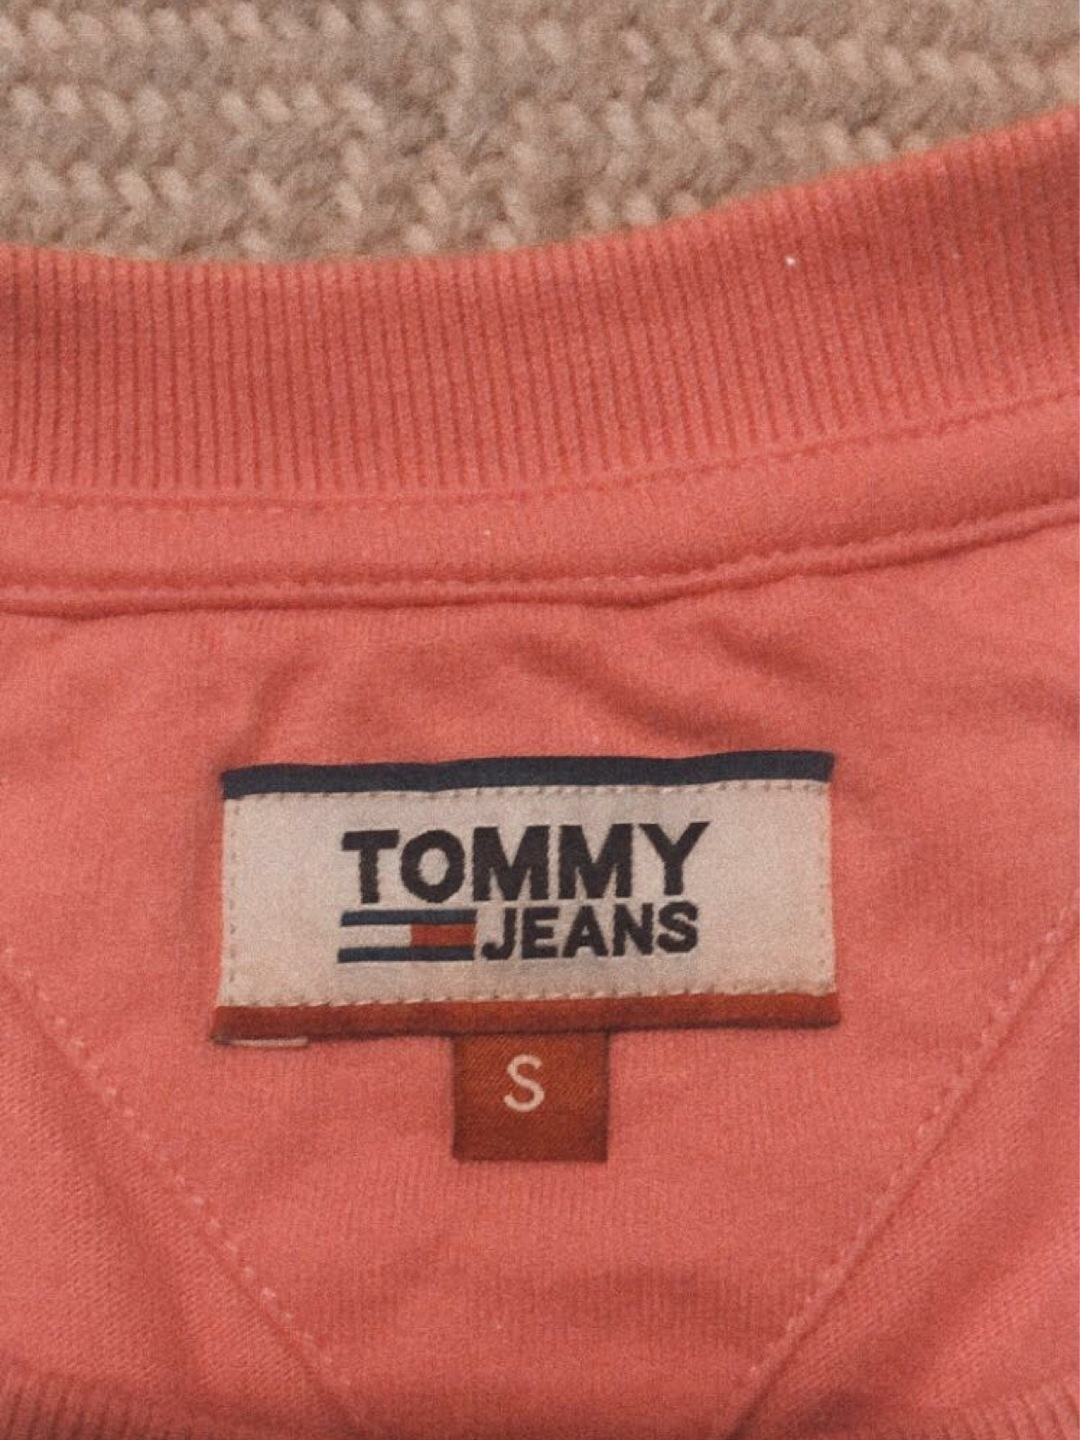 Damen tops & t-shirts - TOMMY JEANS photo 3